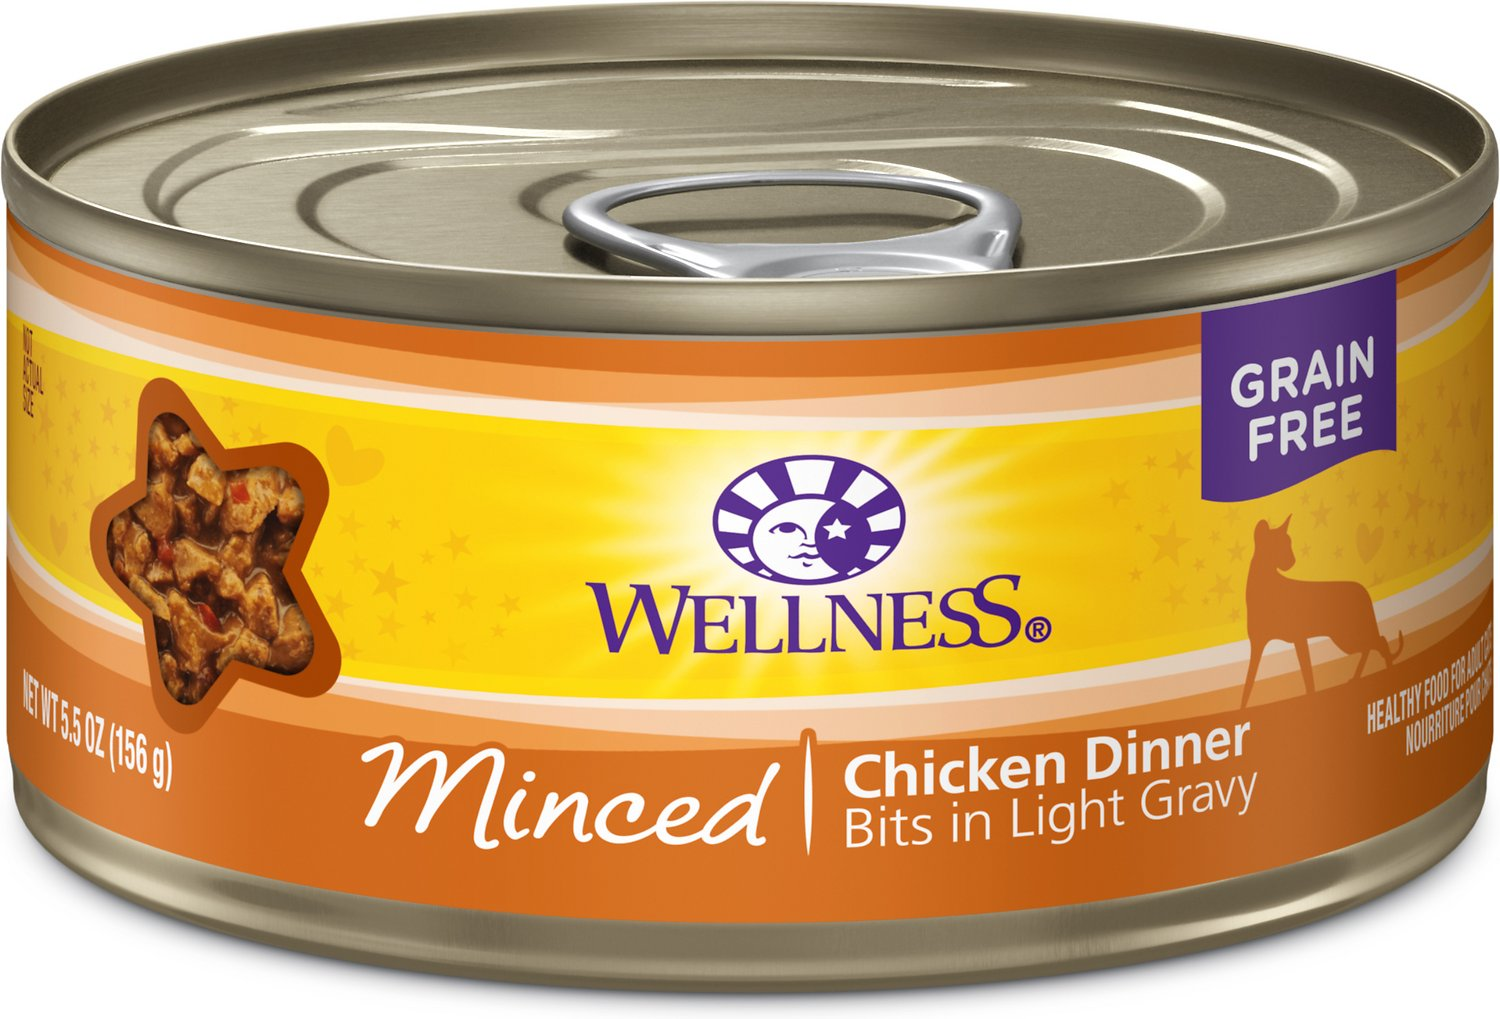 Wellness Minced Chicken Dinner Grain-Free Canned Cat Food, 5.5-oz